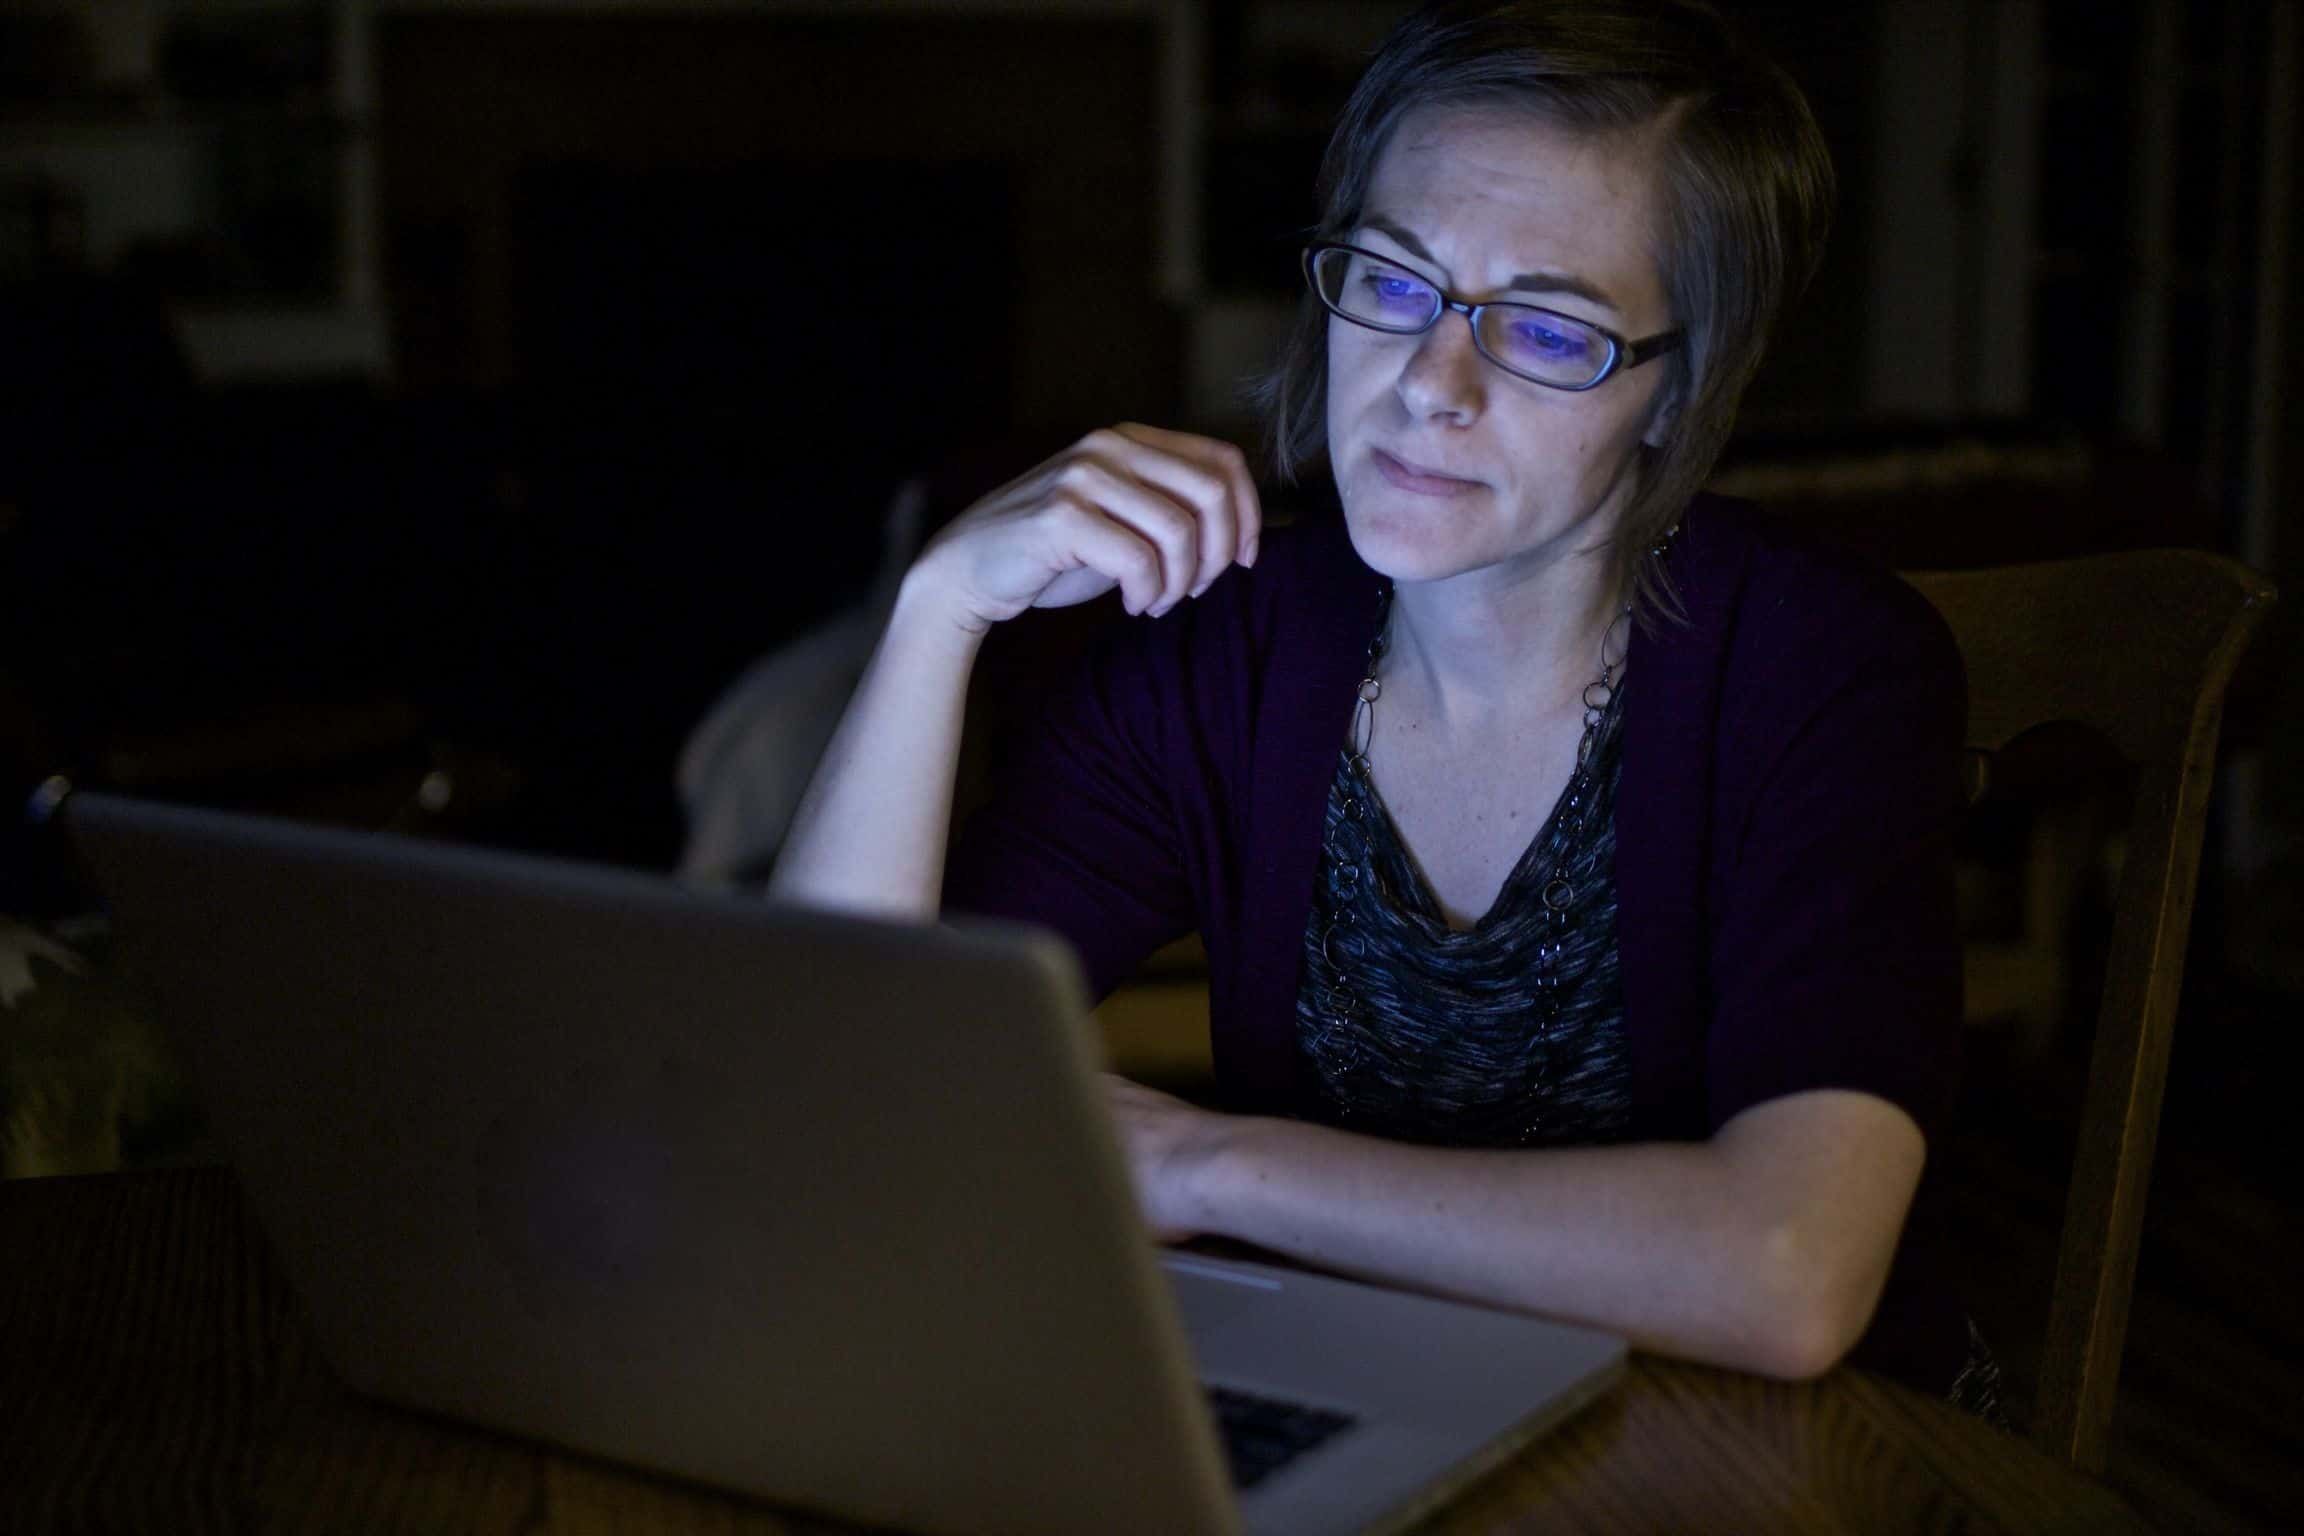 Frustrated woman working on laptop in the dark